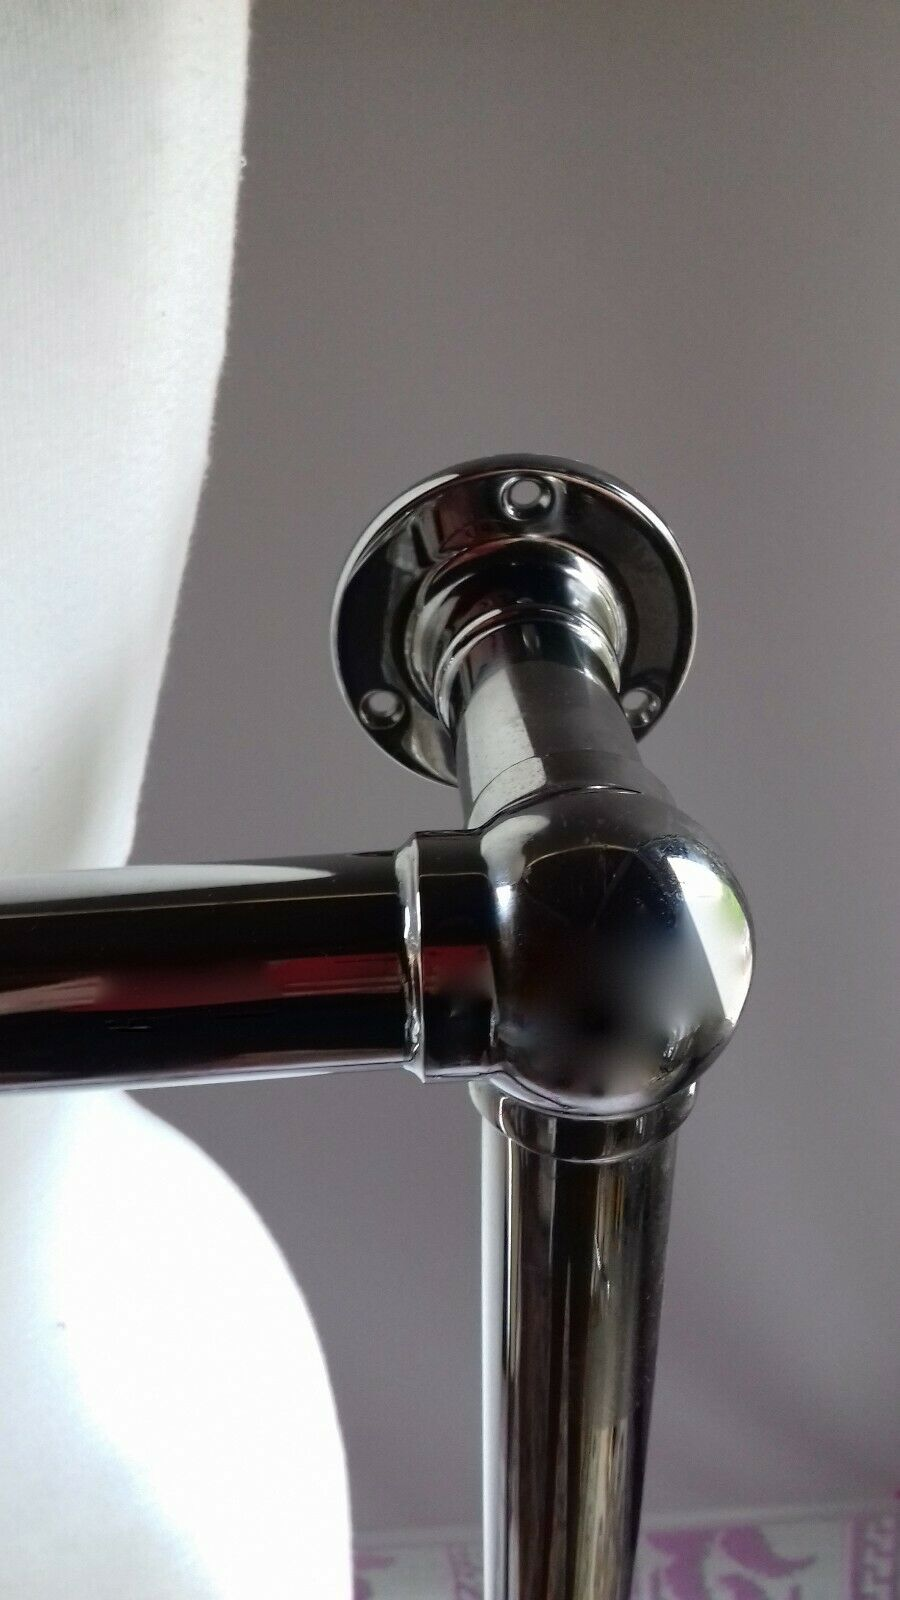 RECLAIMED CHROME VOGUE WALL HUNG TOWEL RAIL WITH FREE TAPS, READY TO INSTALL